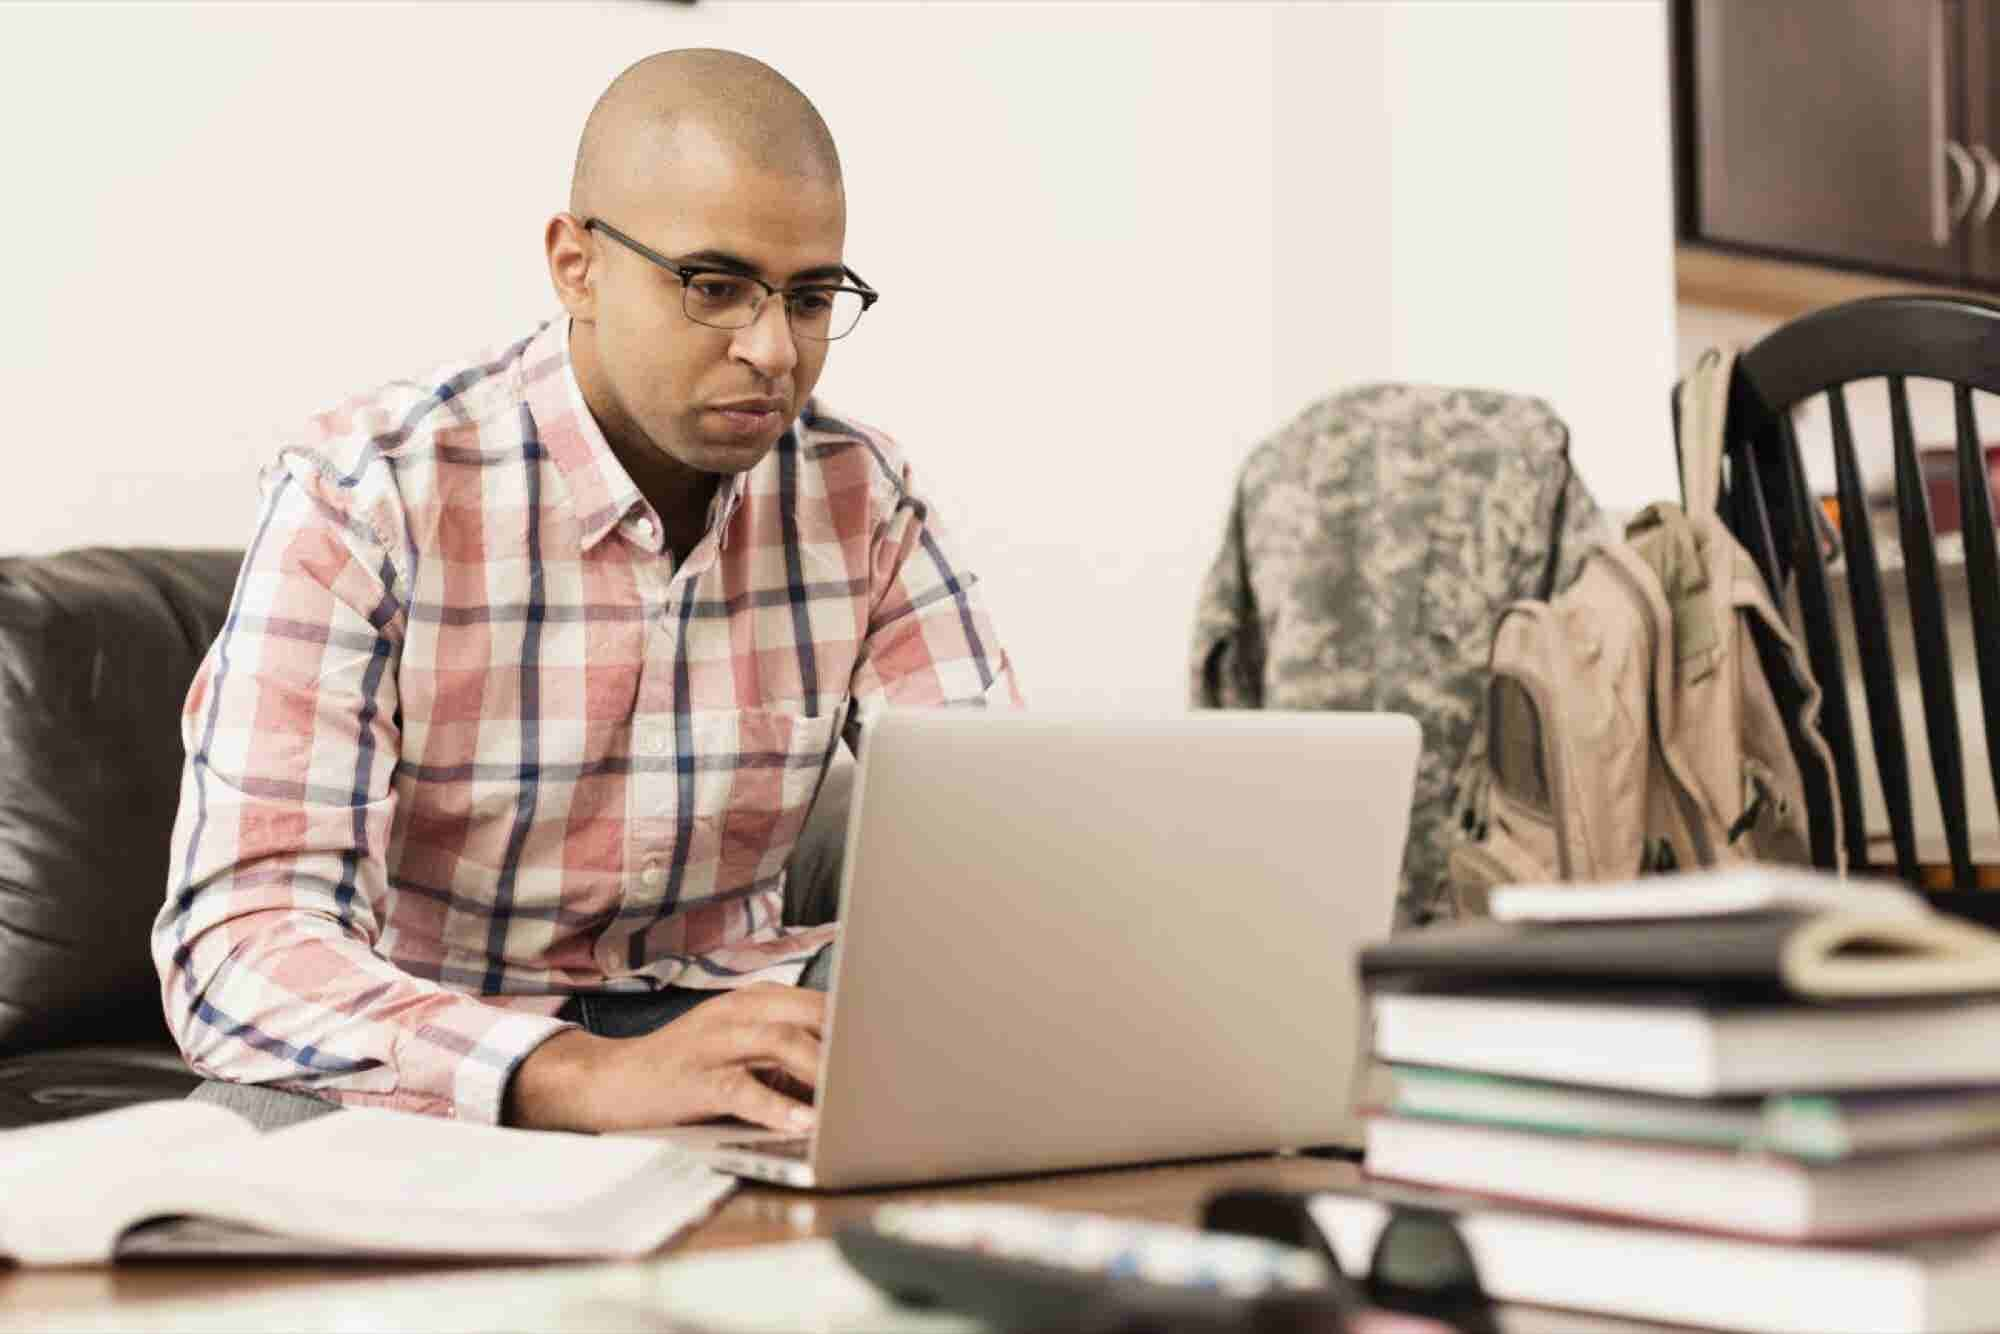 It's Time to Bust These 3 Myths About Hiring Veterans